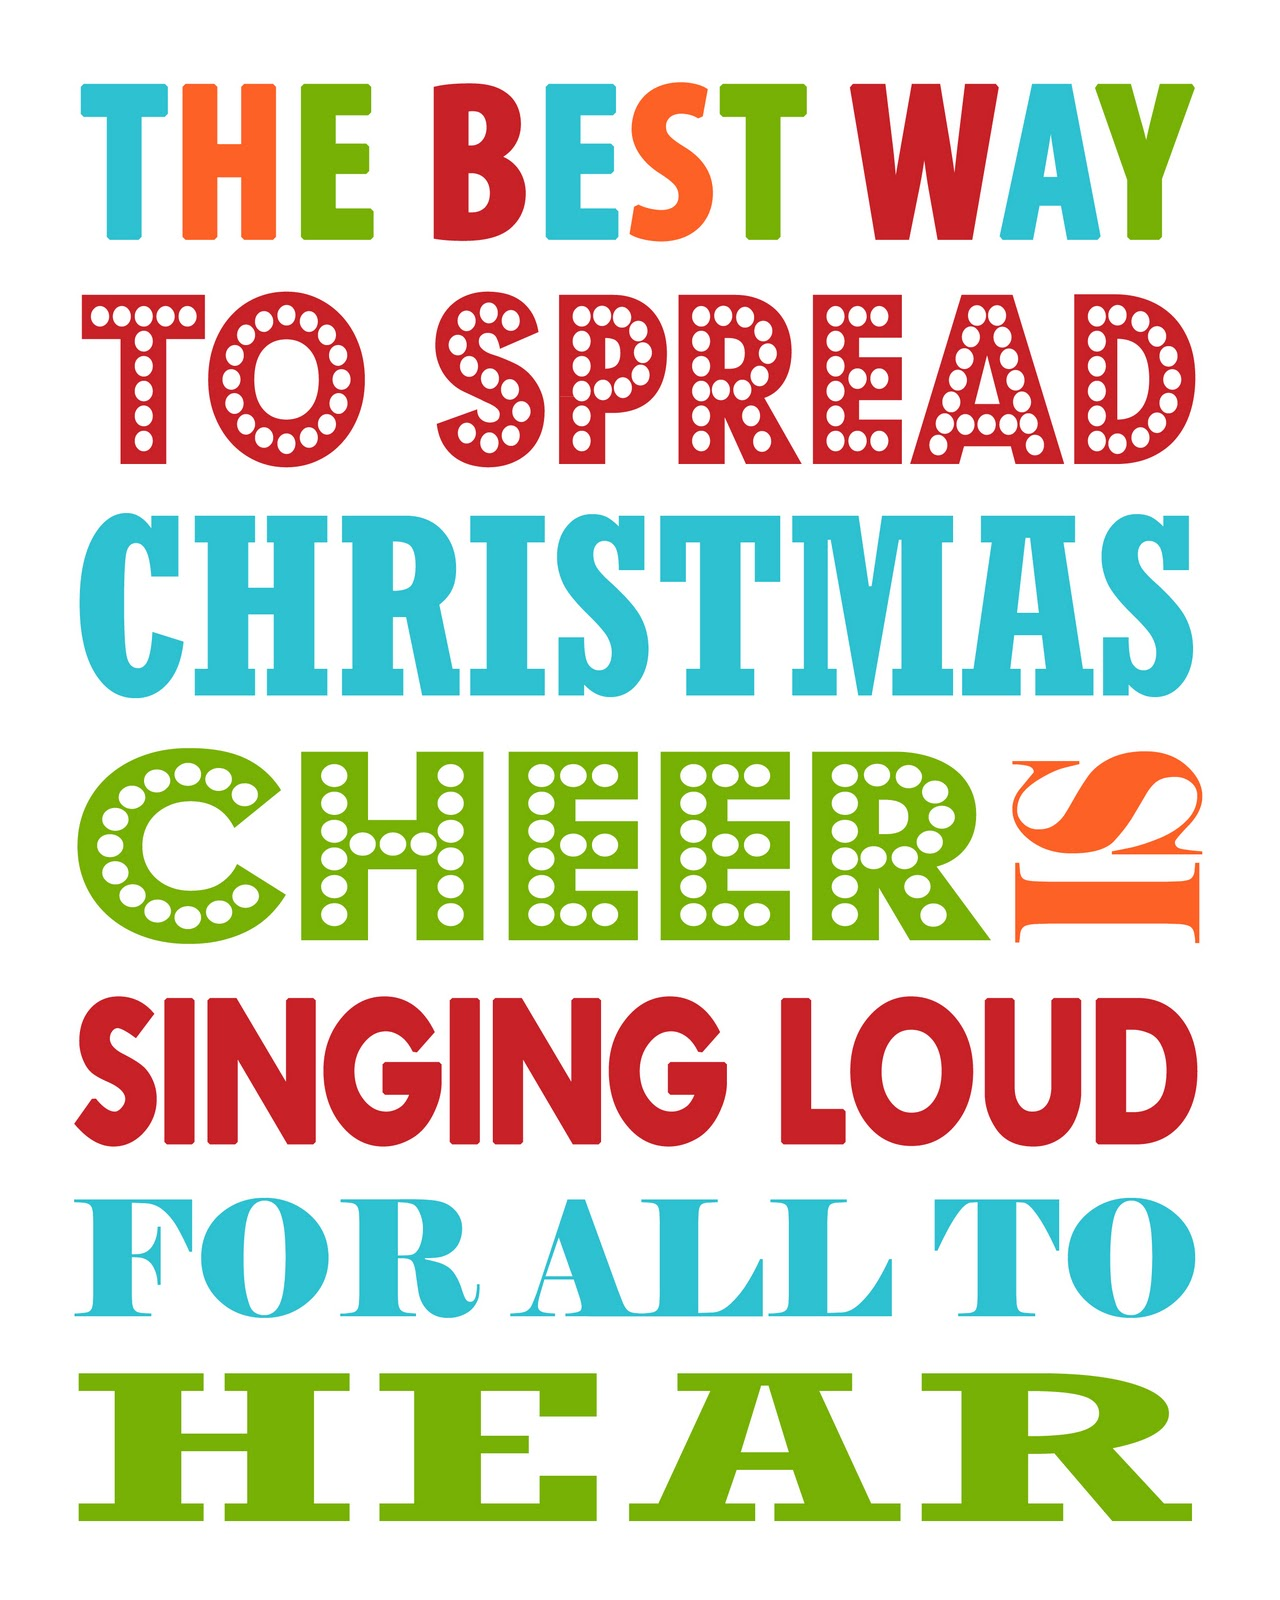 Printable Pictures For Christmas: It's Written On The Wall: 44 FREE Christmas Subway Art For